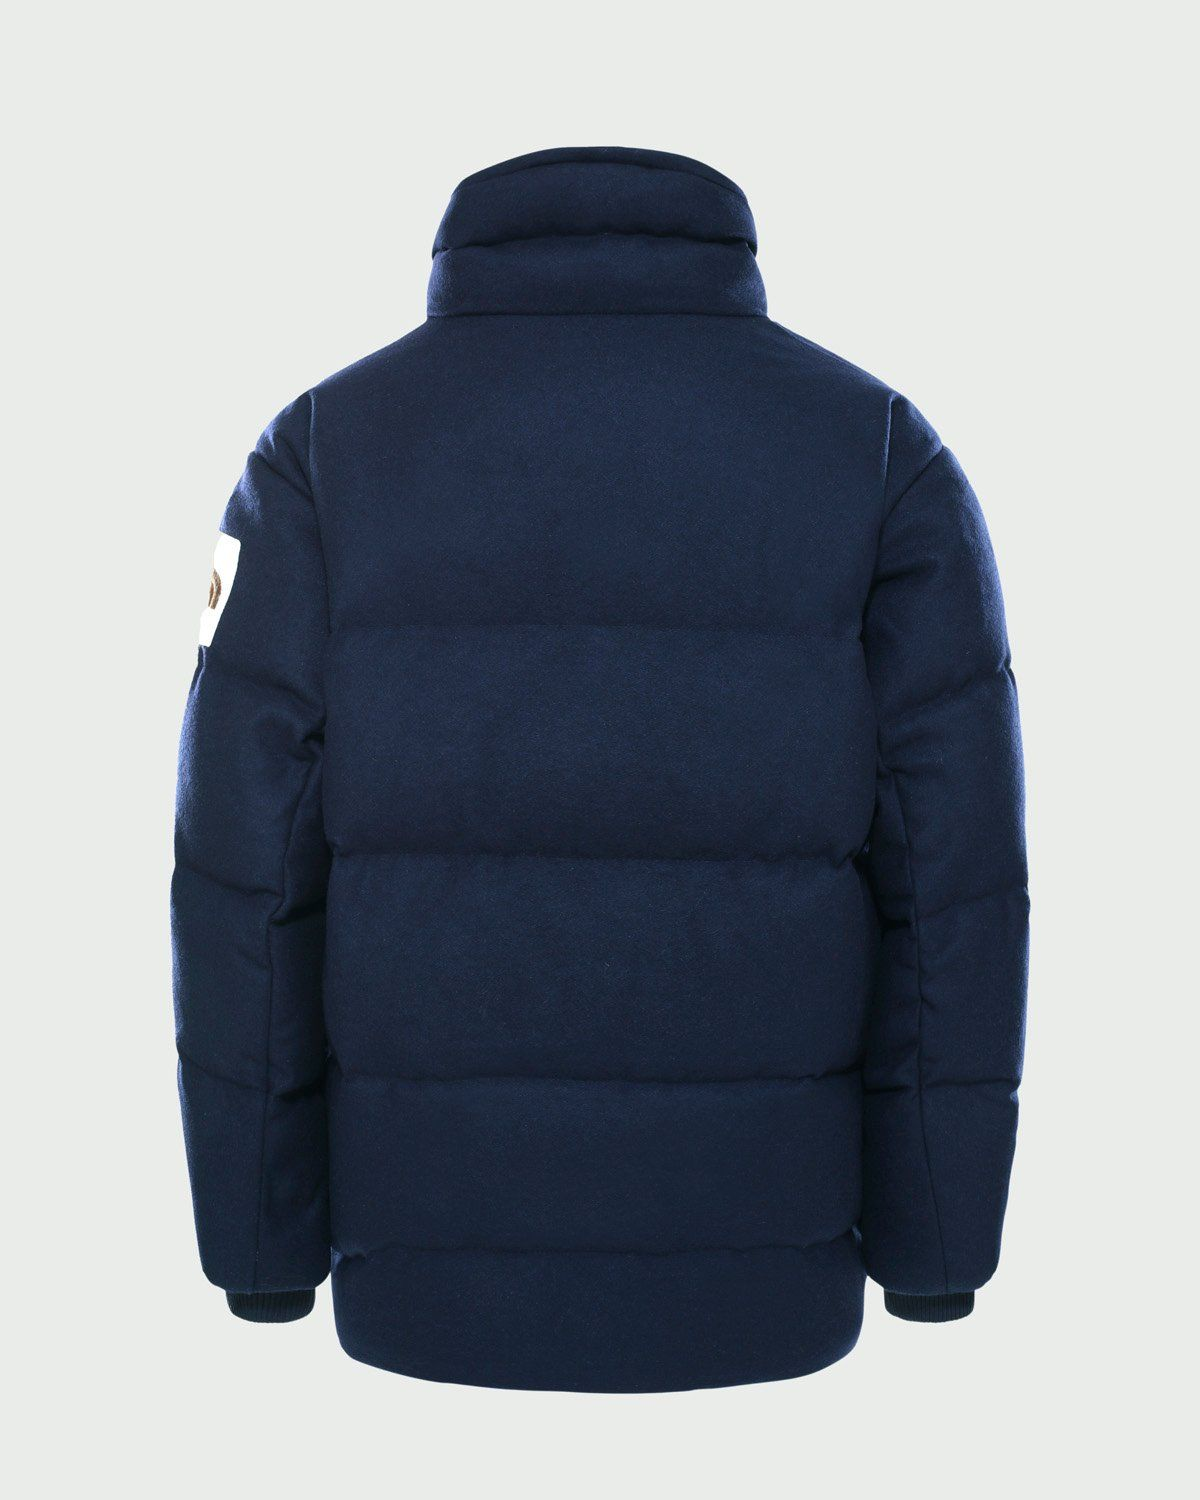 The North Face Brown Label - Larkspur Wool Down Jacket Navy Women - Image 2